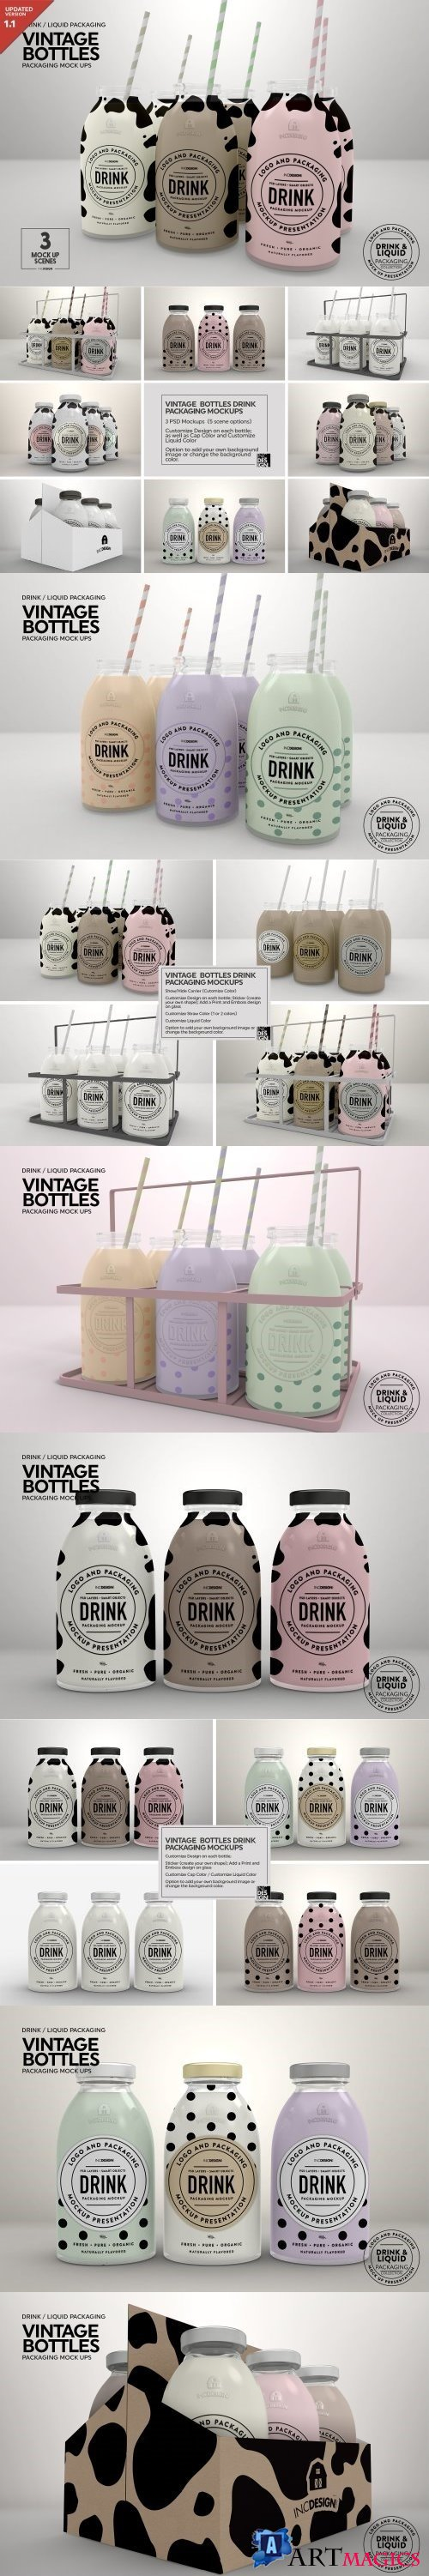 Vintage Bottles Packaging Mockups 908479